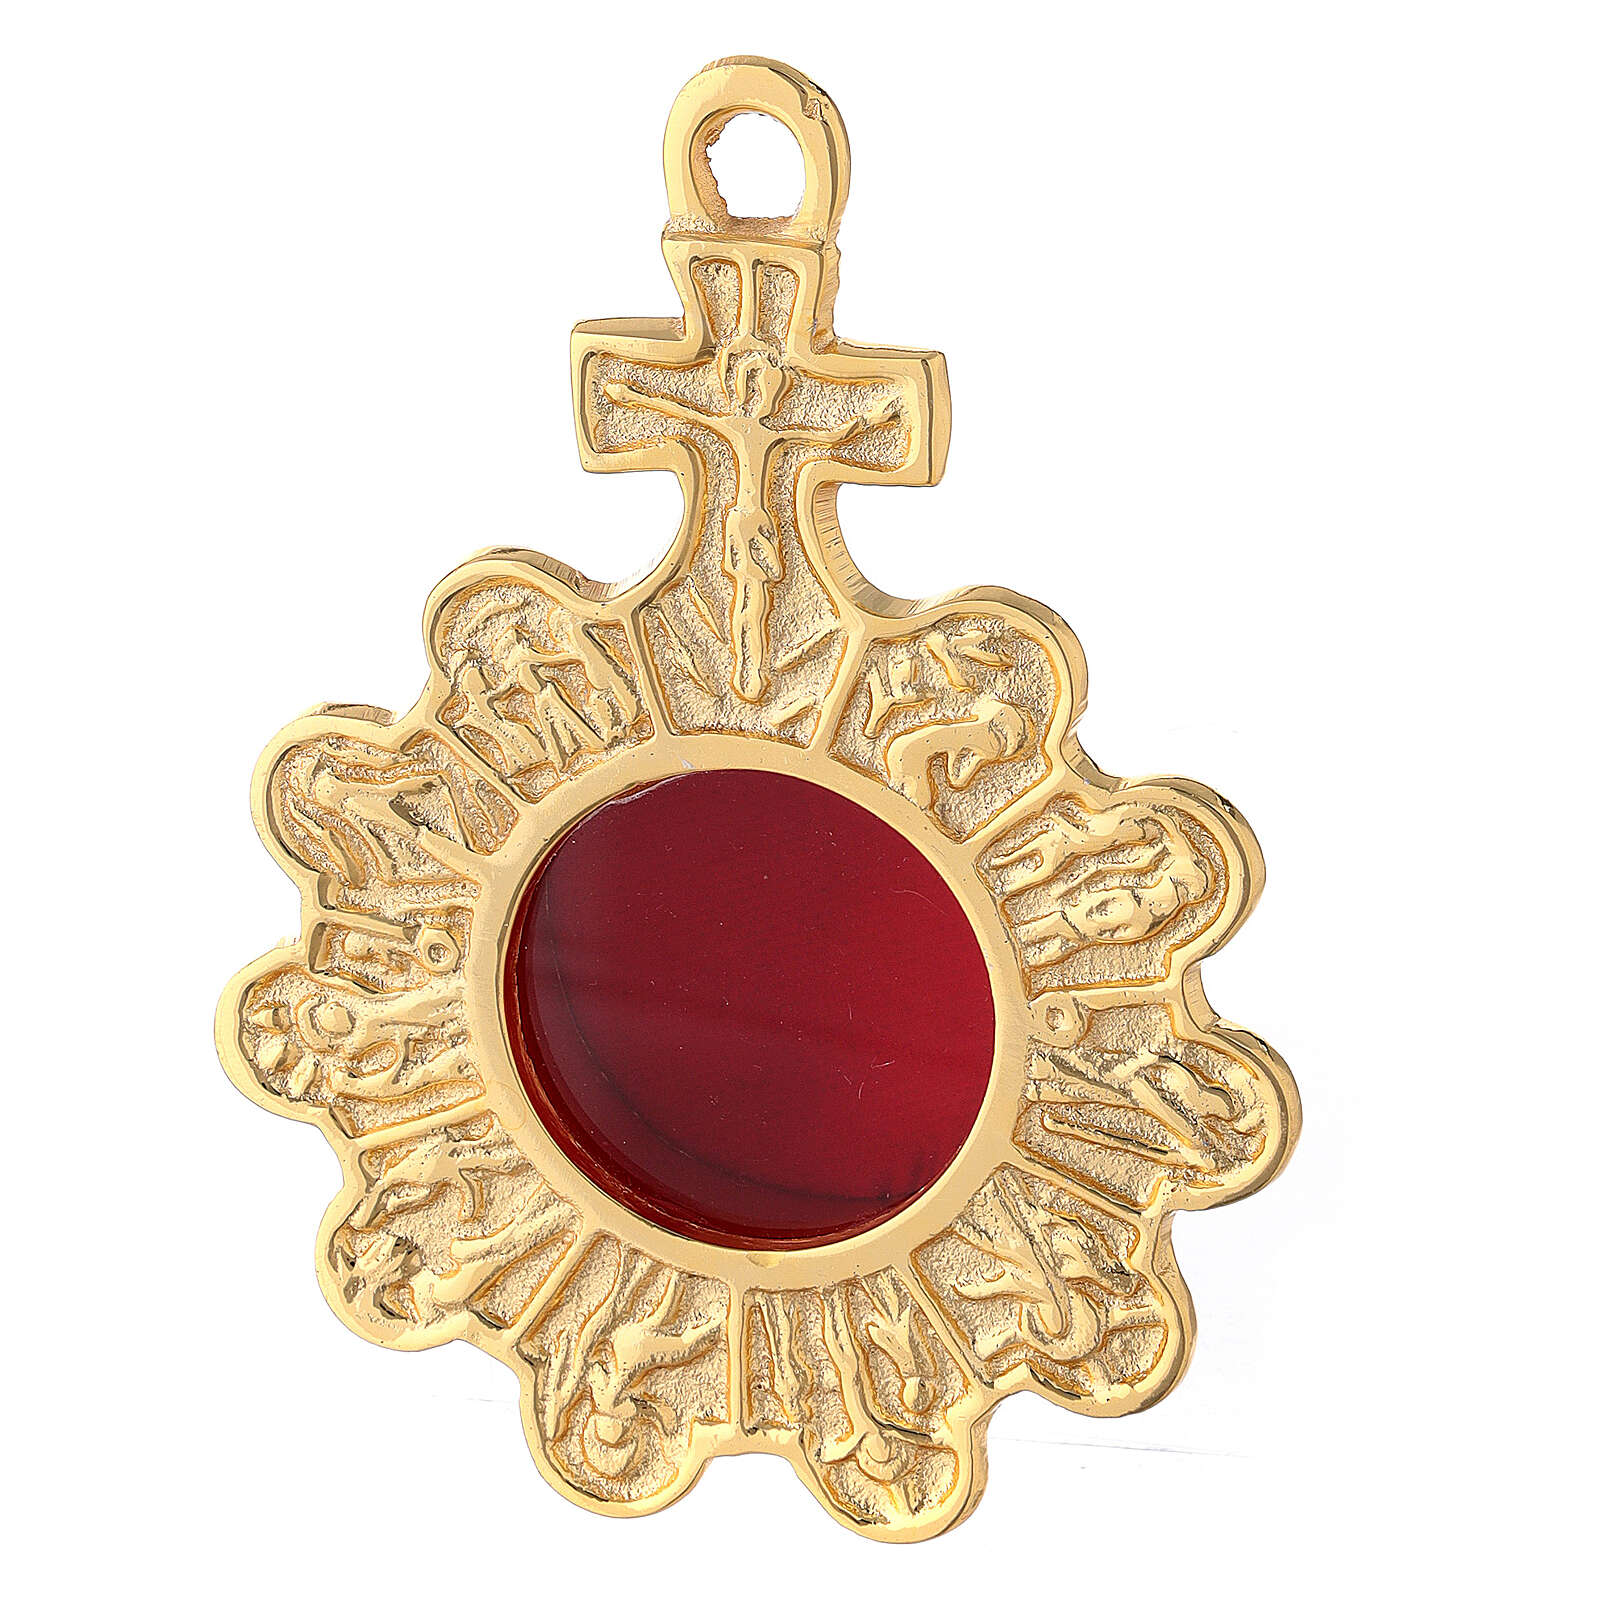 Wall rosary reliquary of gold plated brass with cross 4